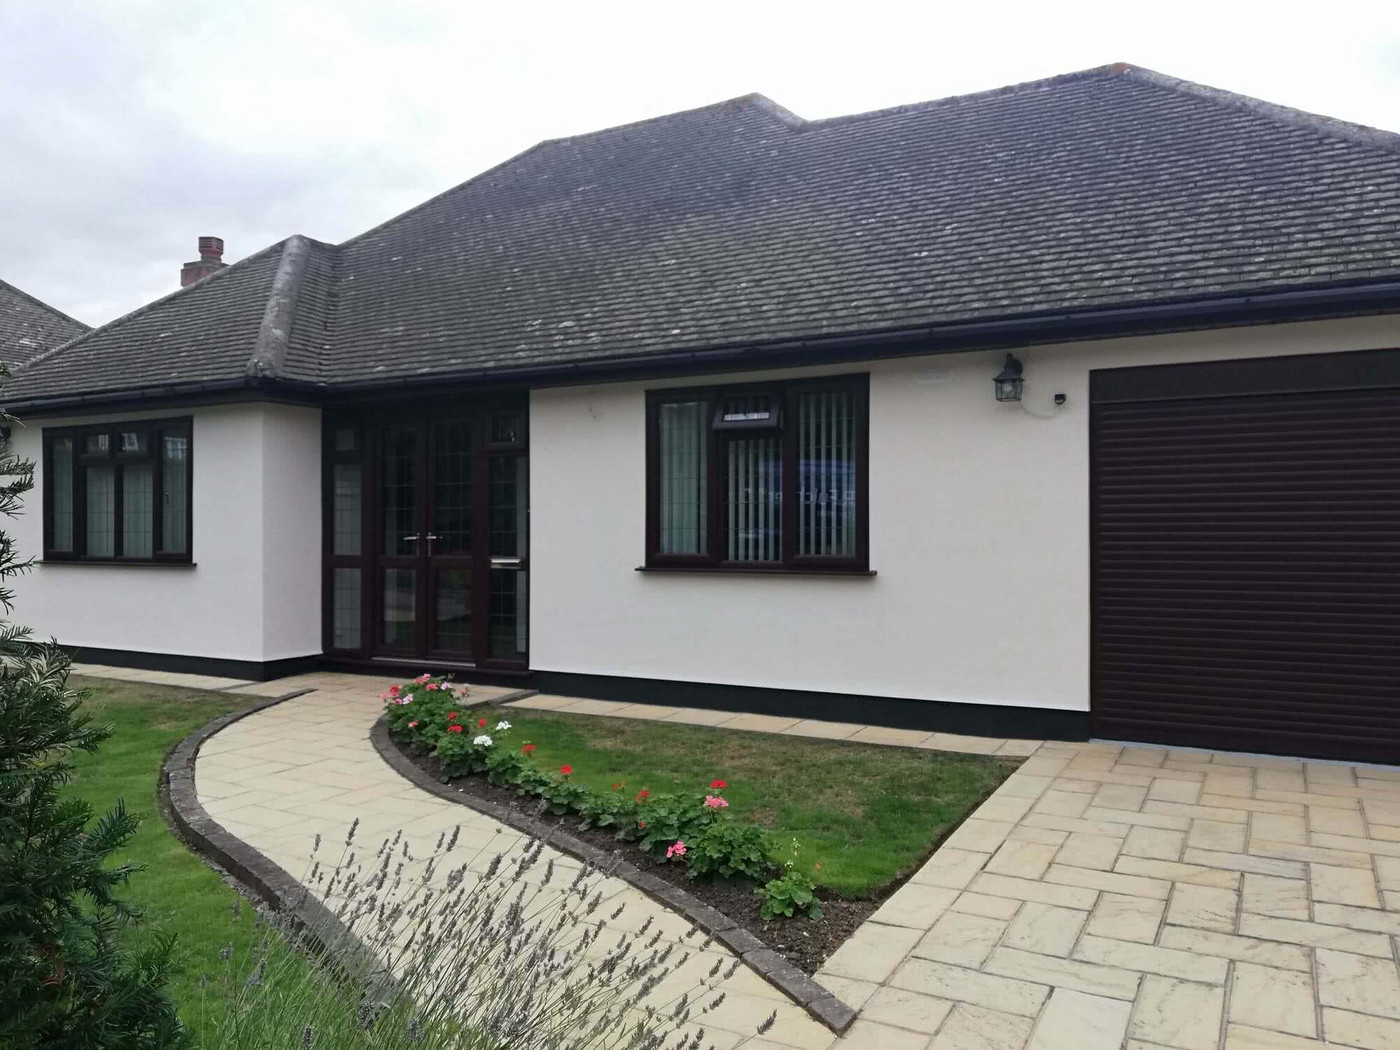 Example of a domestic rendering project completed by R. Fulcher & Sons